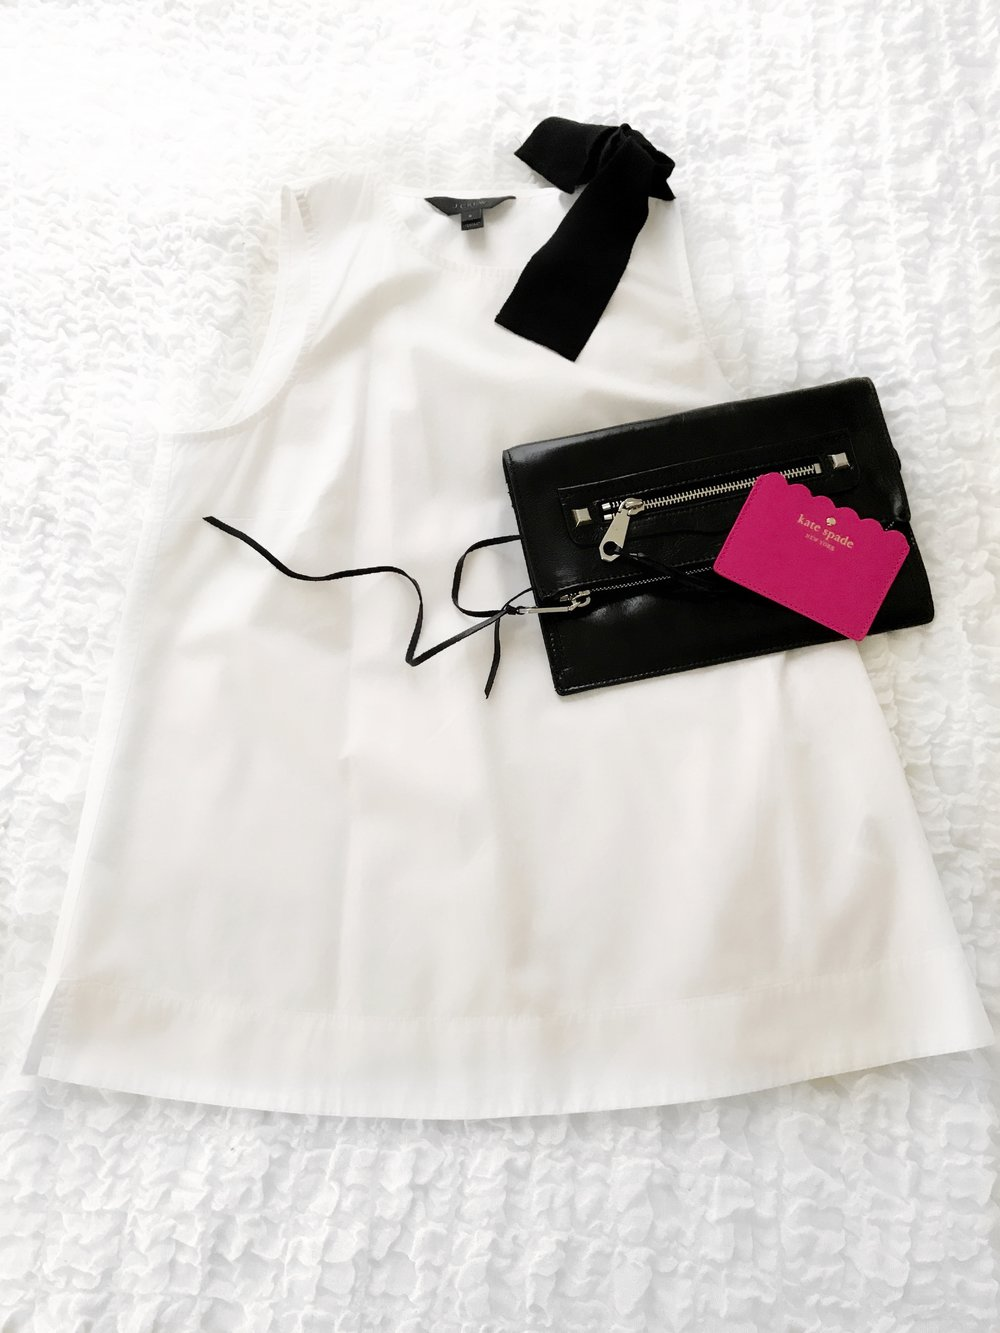 I shy away from white shirts that need to be dry-cleaned when with my kids, so it's time to break it out of my closet! This is J Crew holiday, but a cute option is here. This Rebecca Minkoff bag is great- it can be worn as a clutch or cross body. The Kate Spade card holder works as the perfect sized wallet.